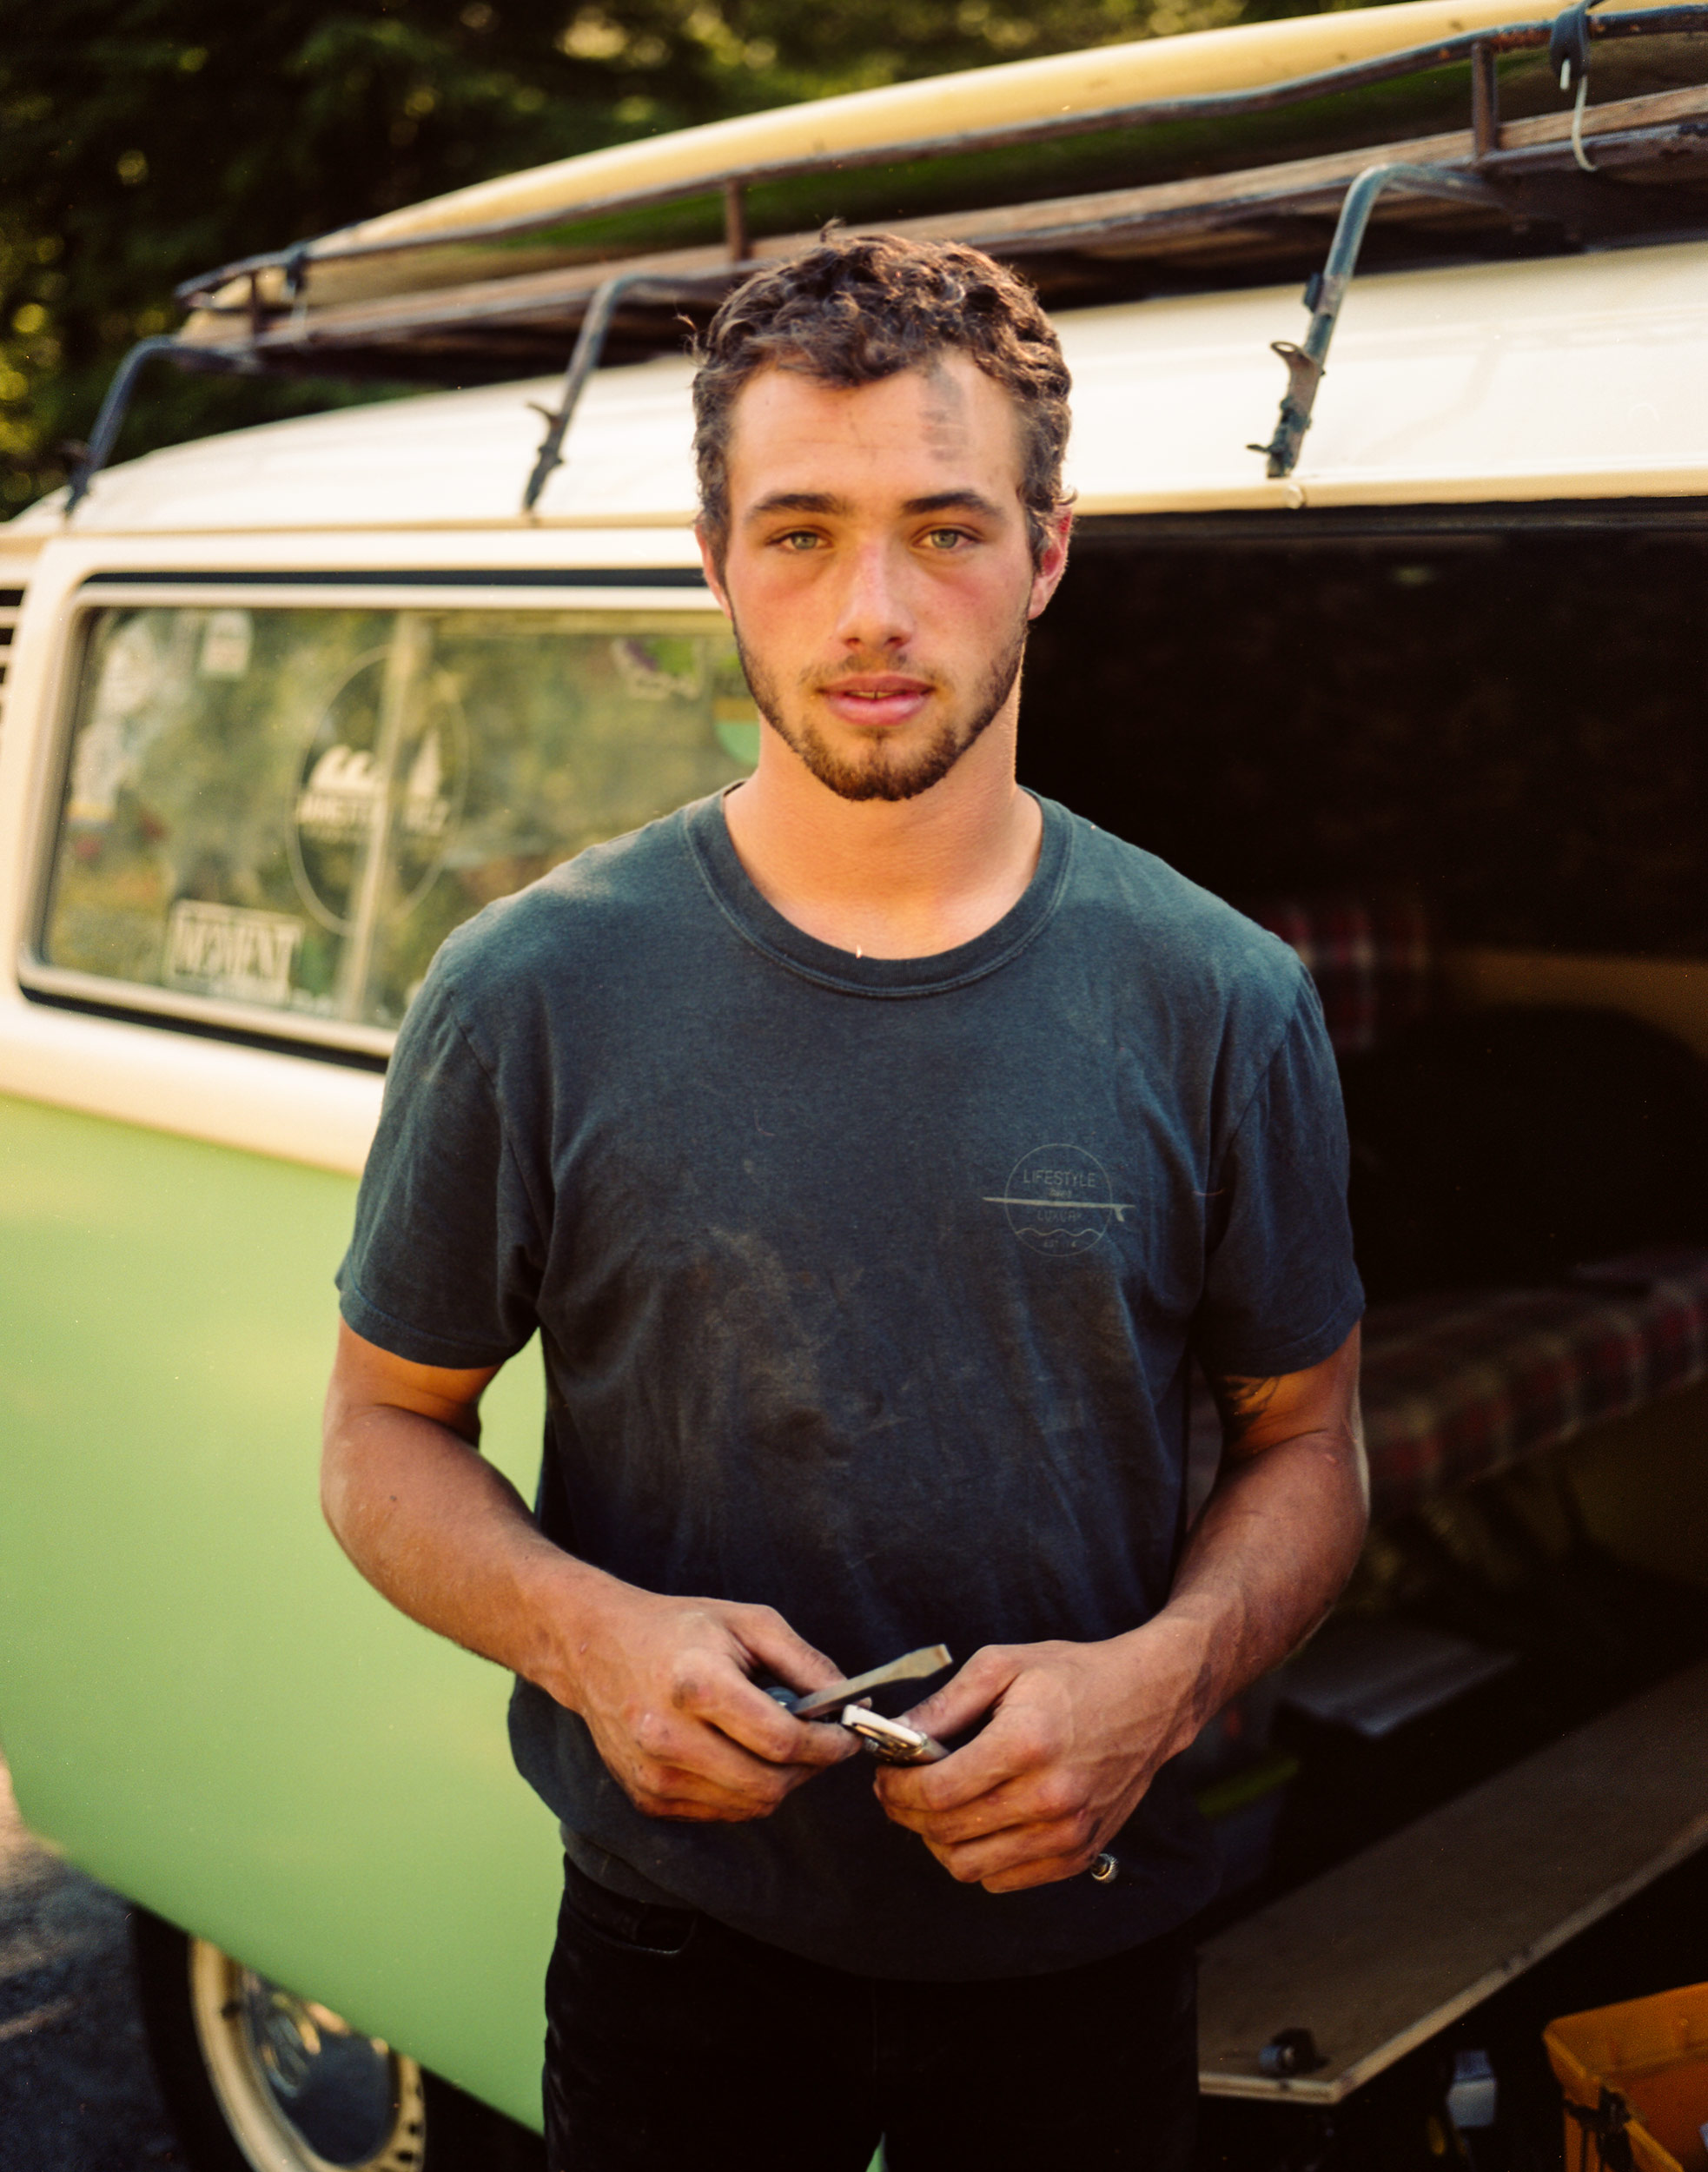 VW Bus Portrait